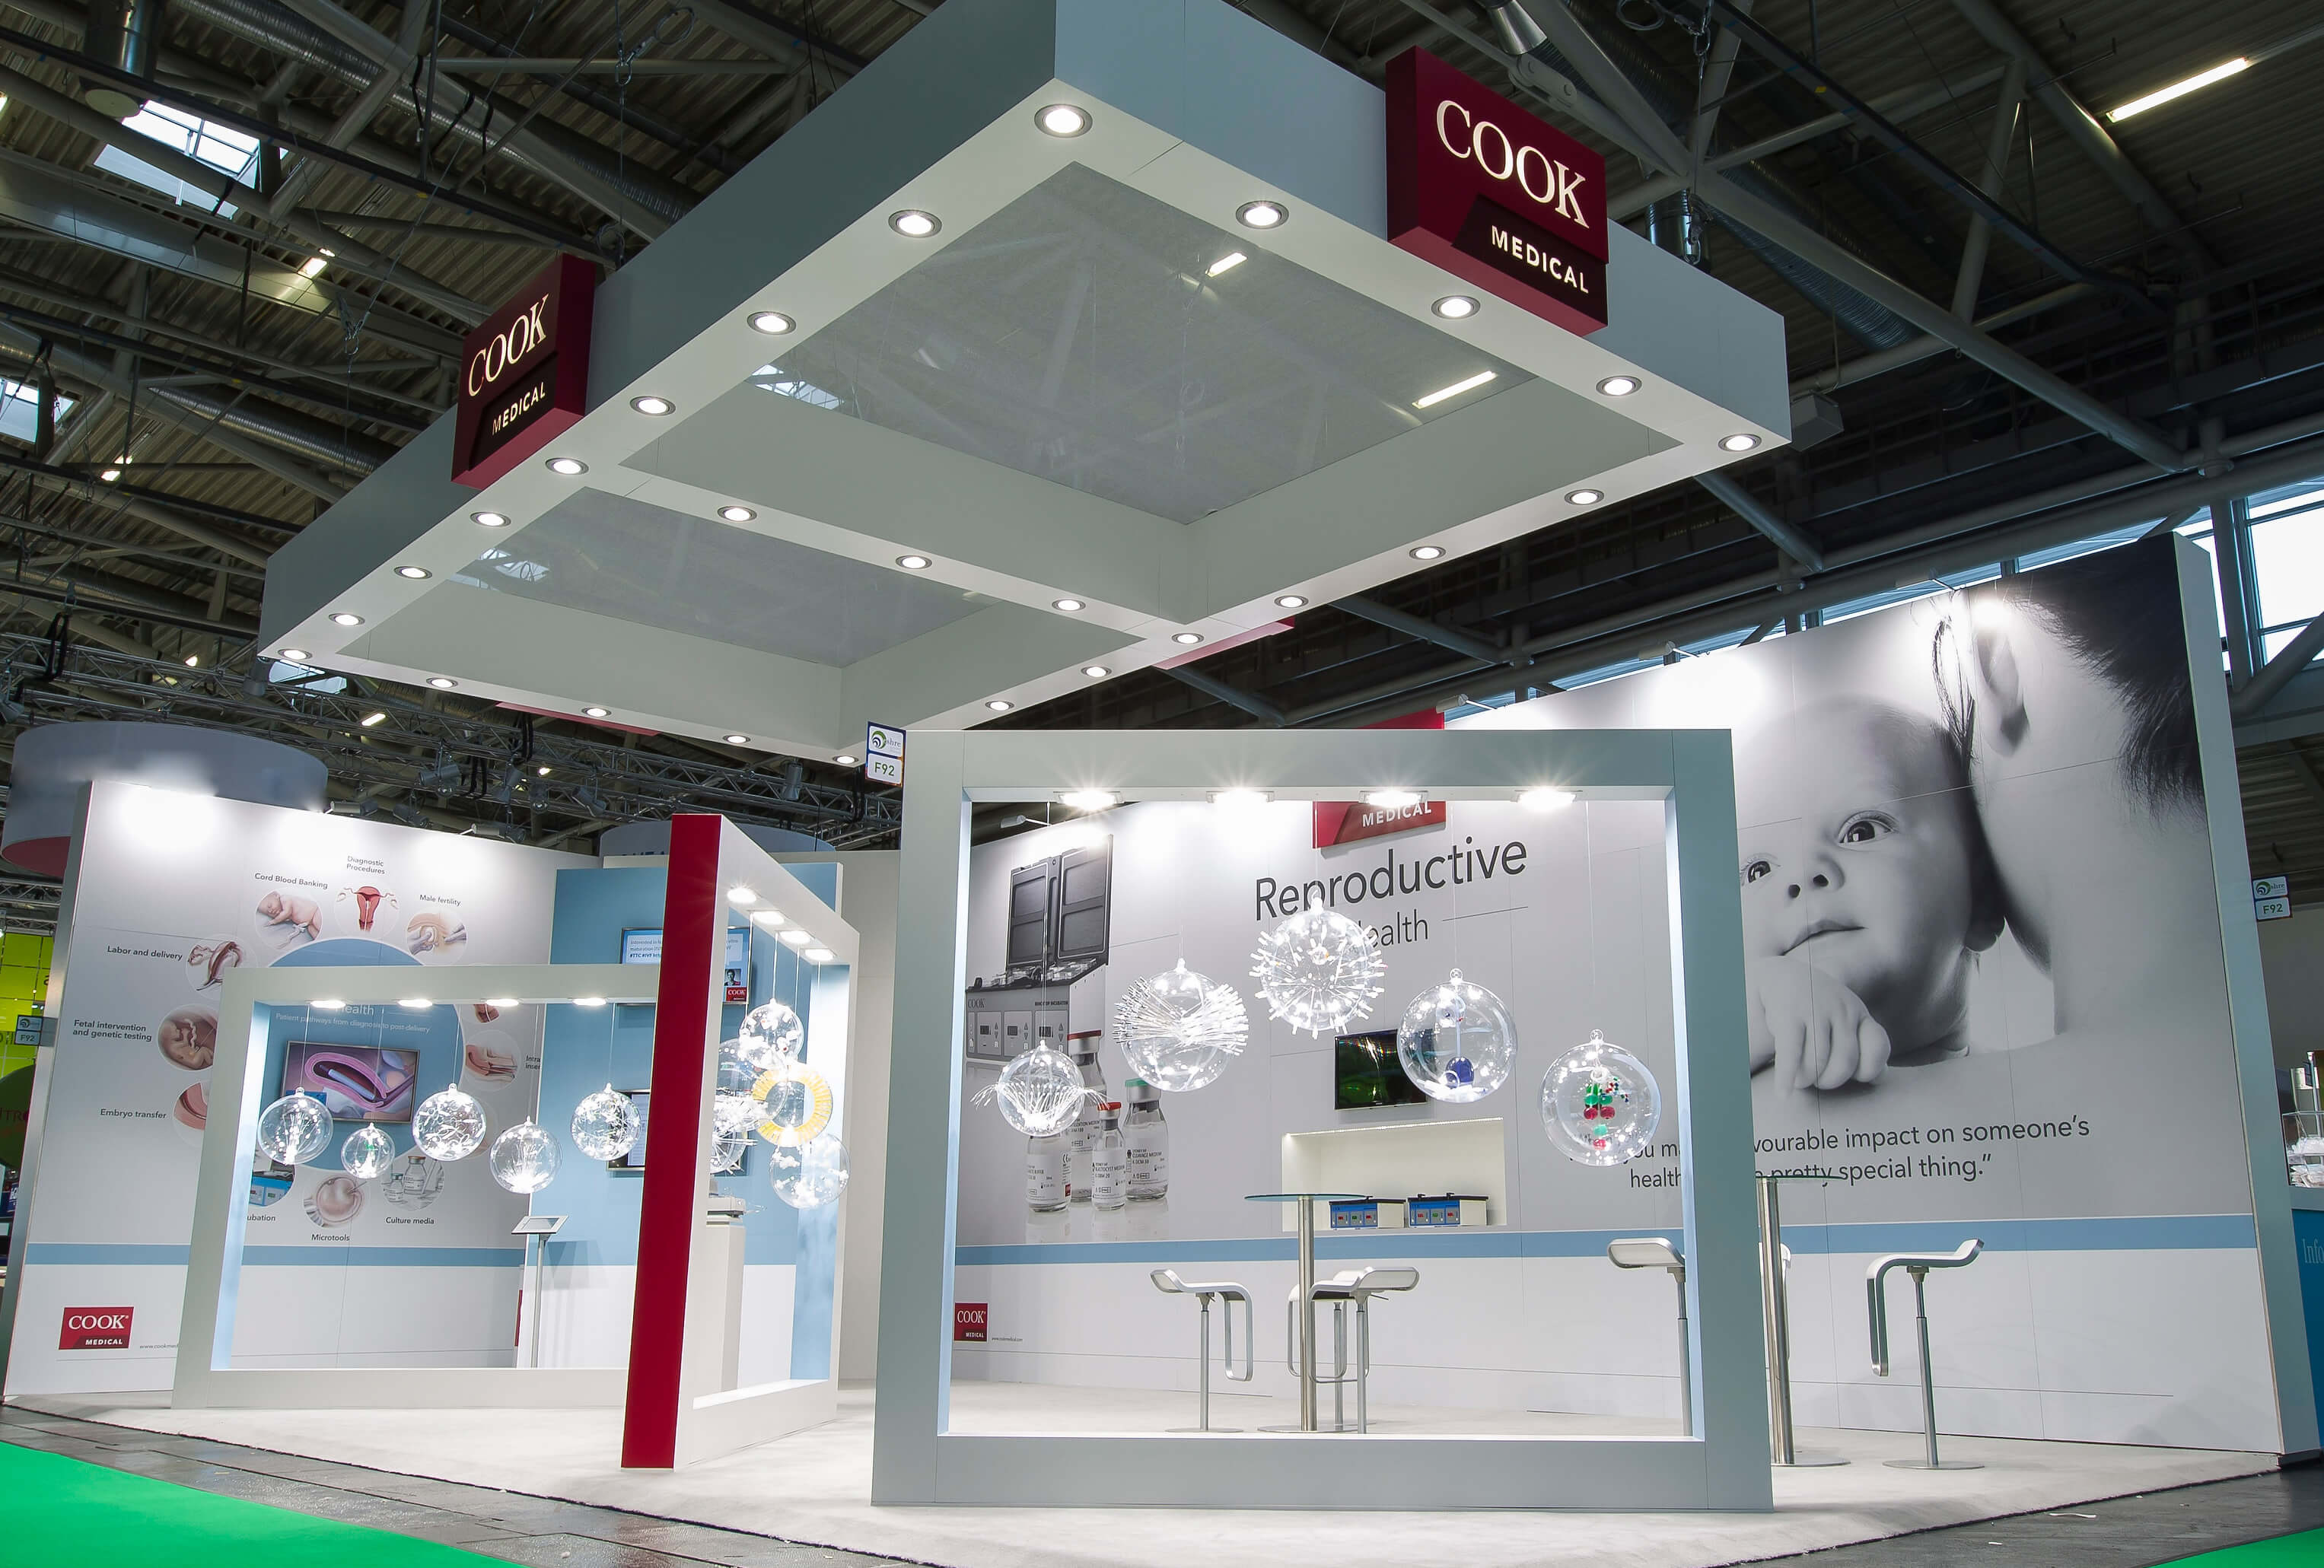 View of the Cook Medical Reproductive Health booth at ESHRE 2014, Munich, Germany